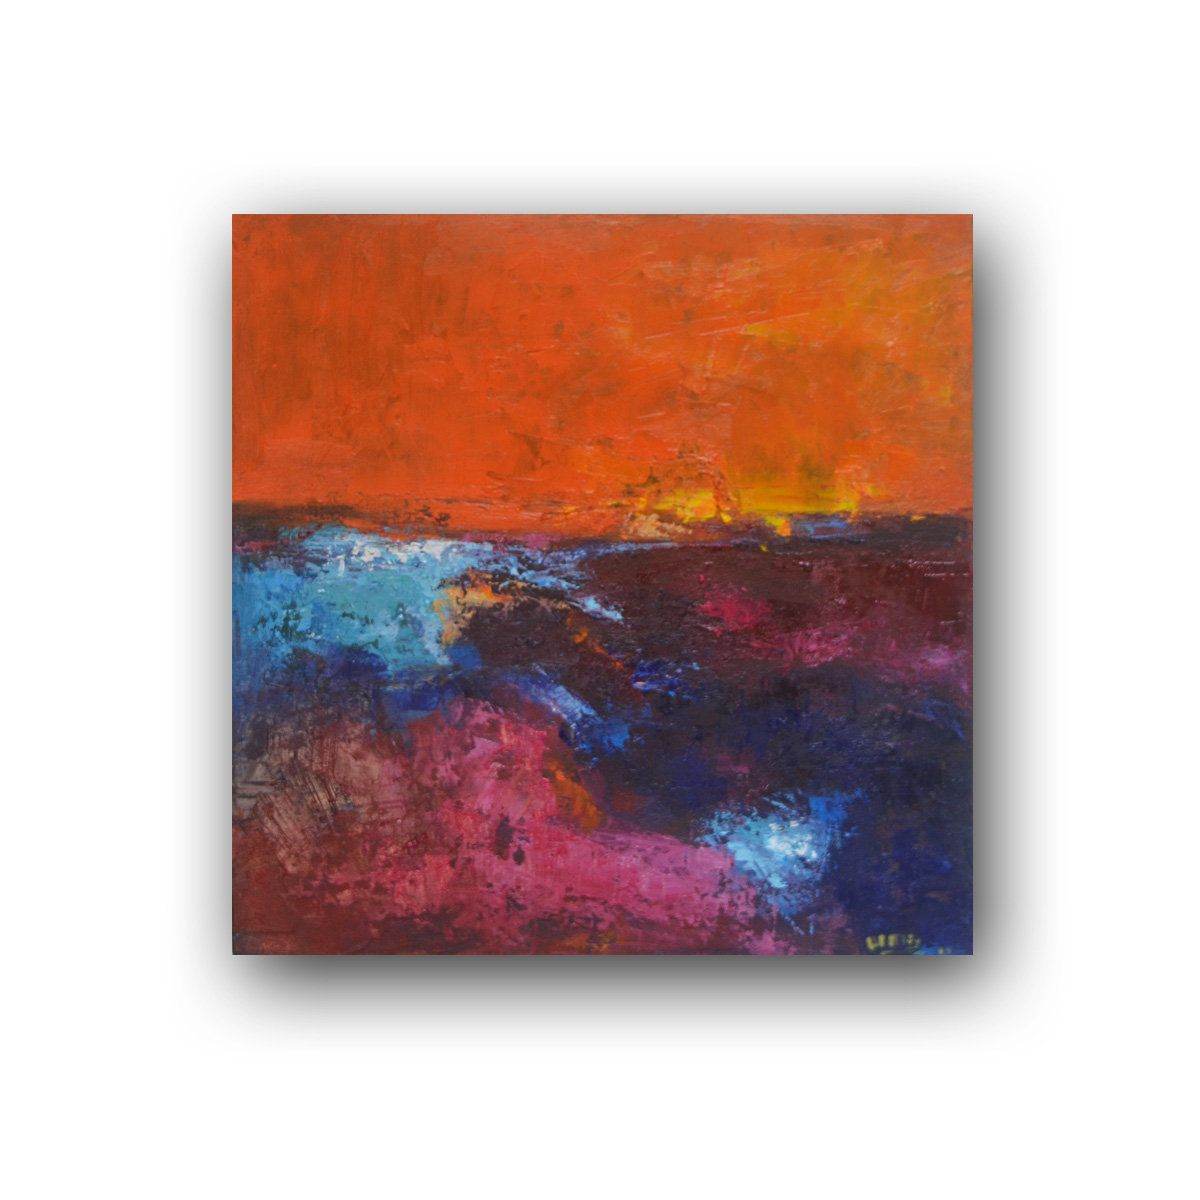 Blue Orange Yellow Green Abstract Abstract Painting Wall Etsy In 2020 Painting Abstract Painting Orange Painting